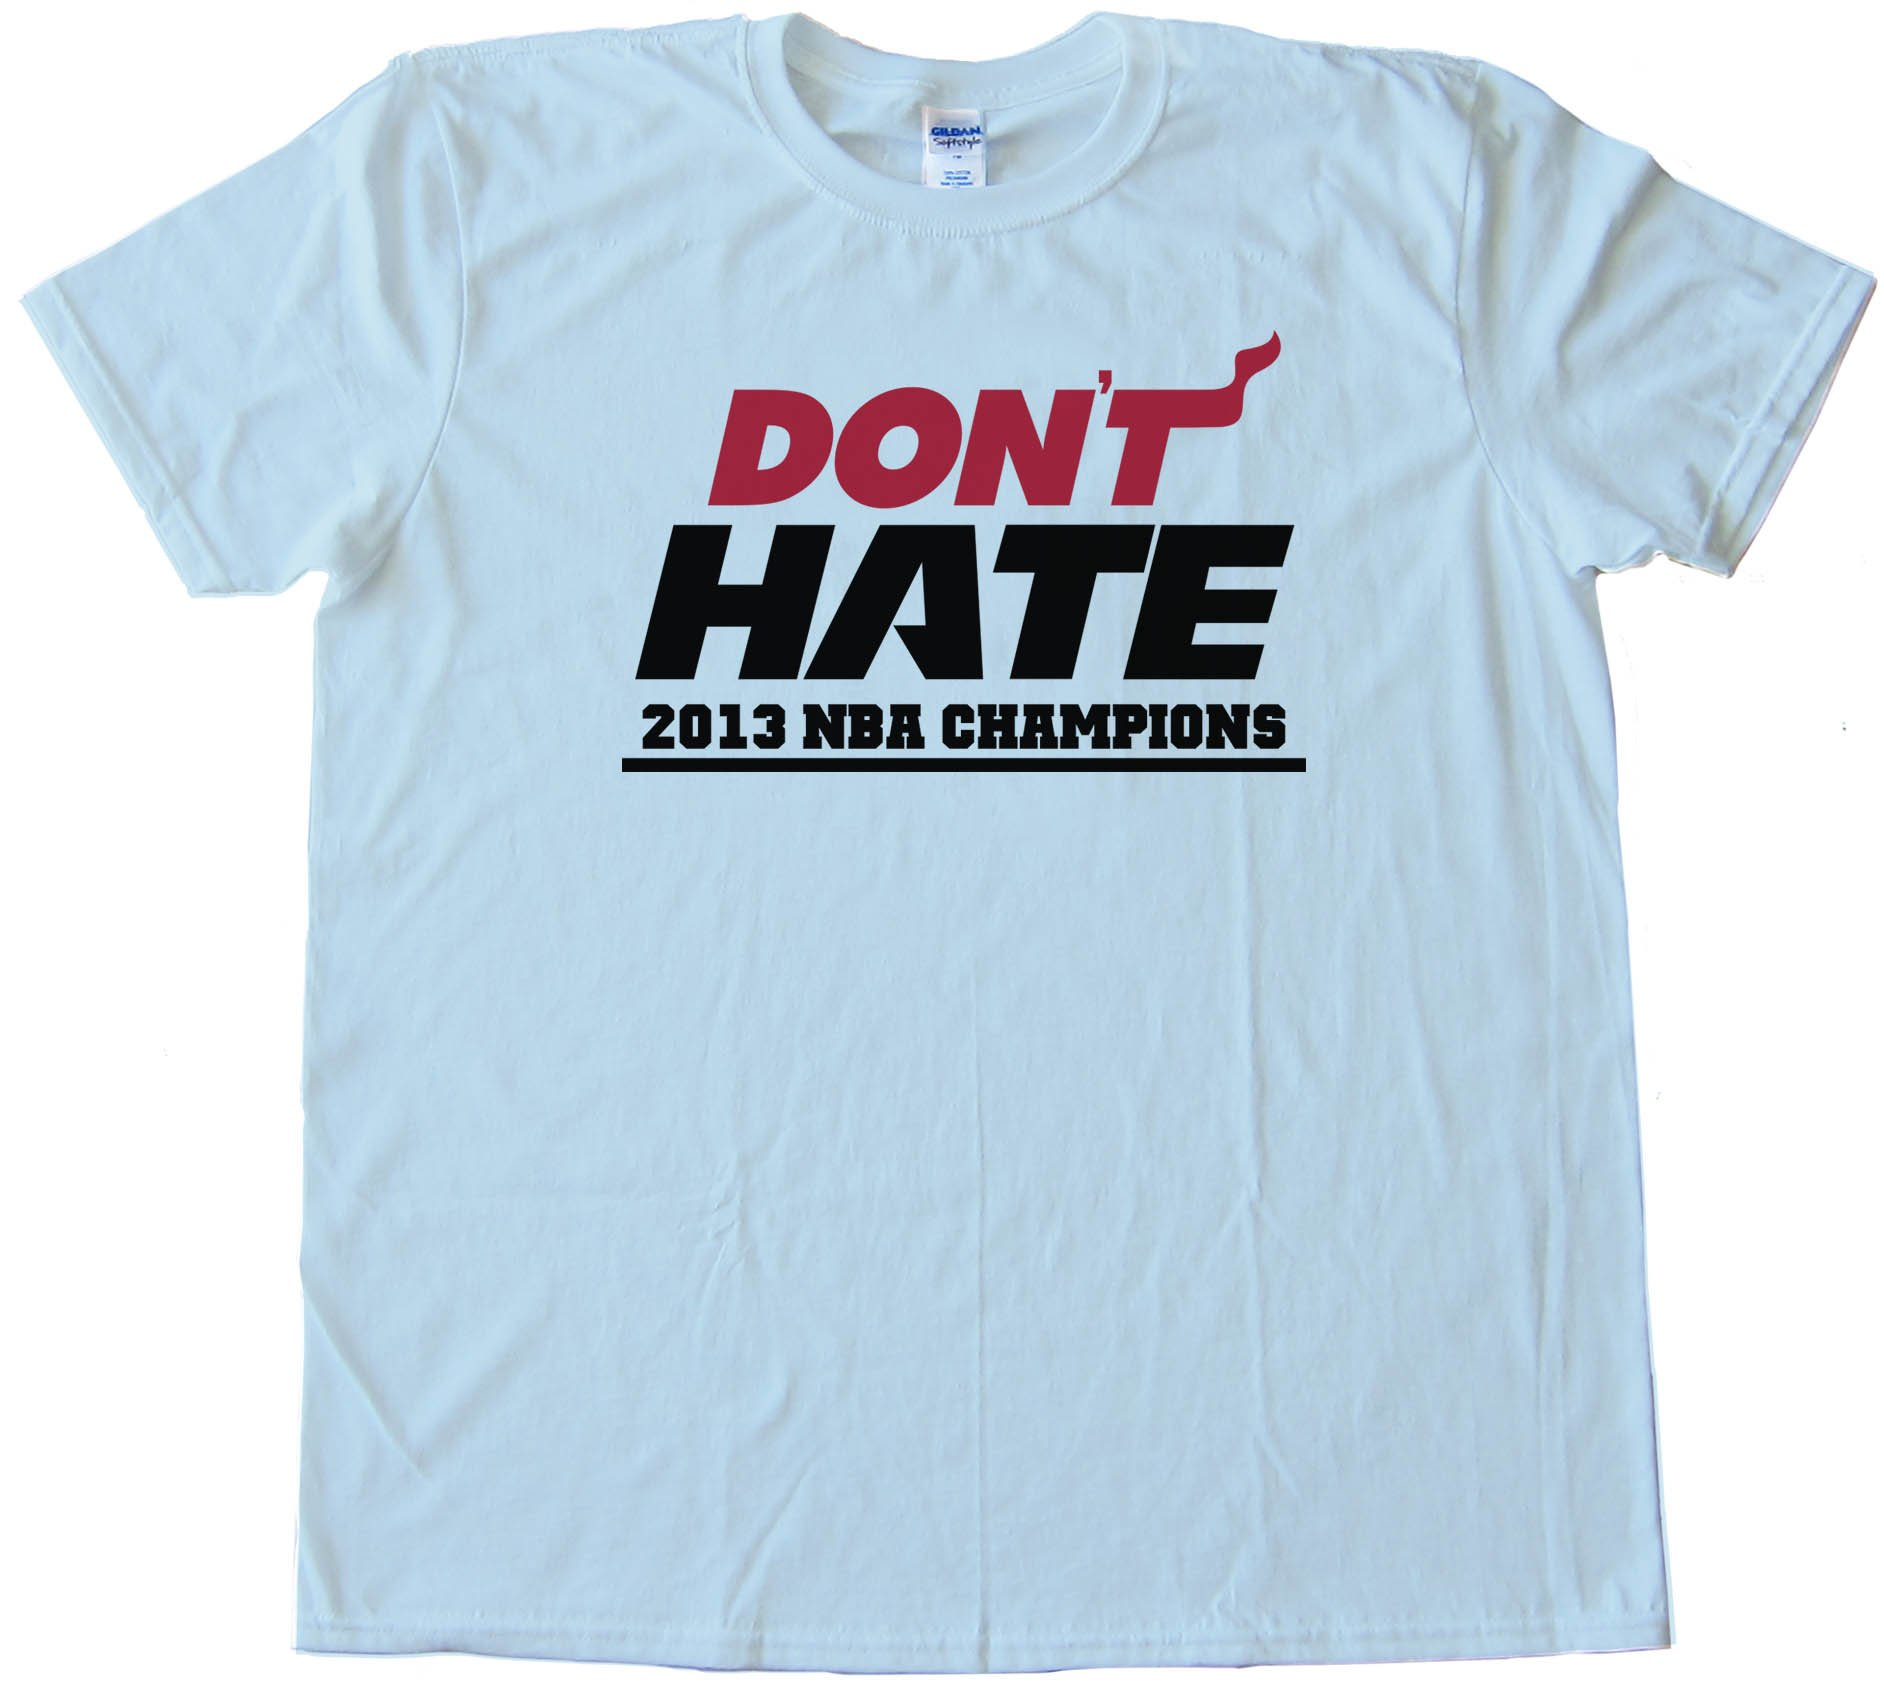 Don'T Hate Miami Heat 2013 Nba Champions - Tee Shirt